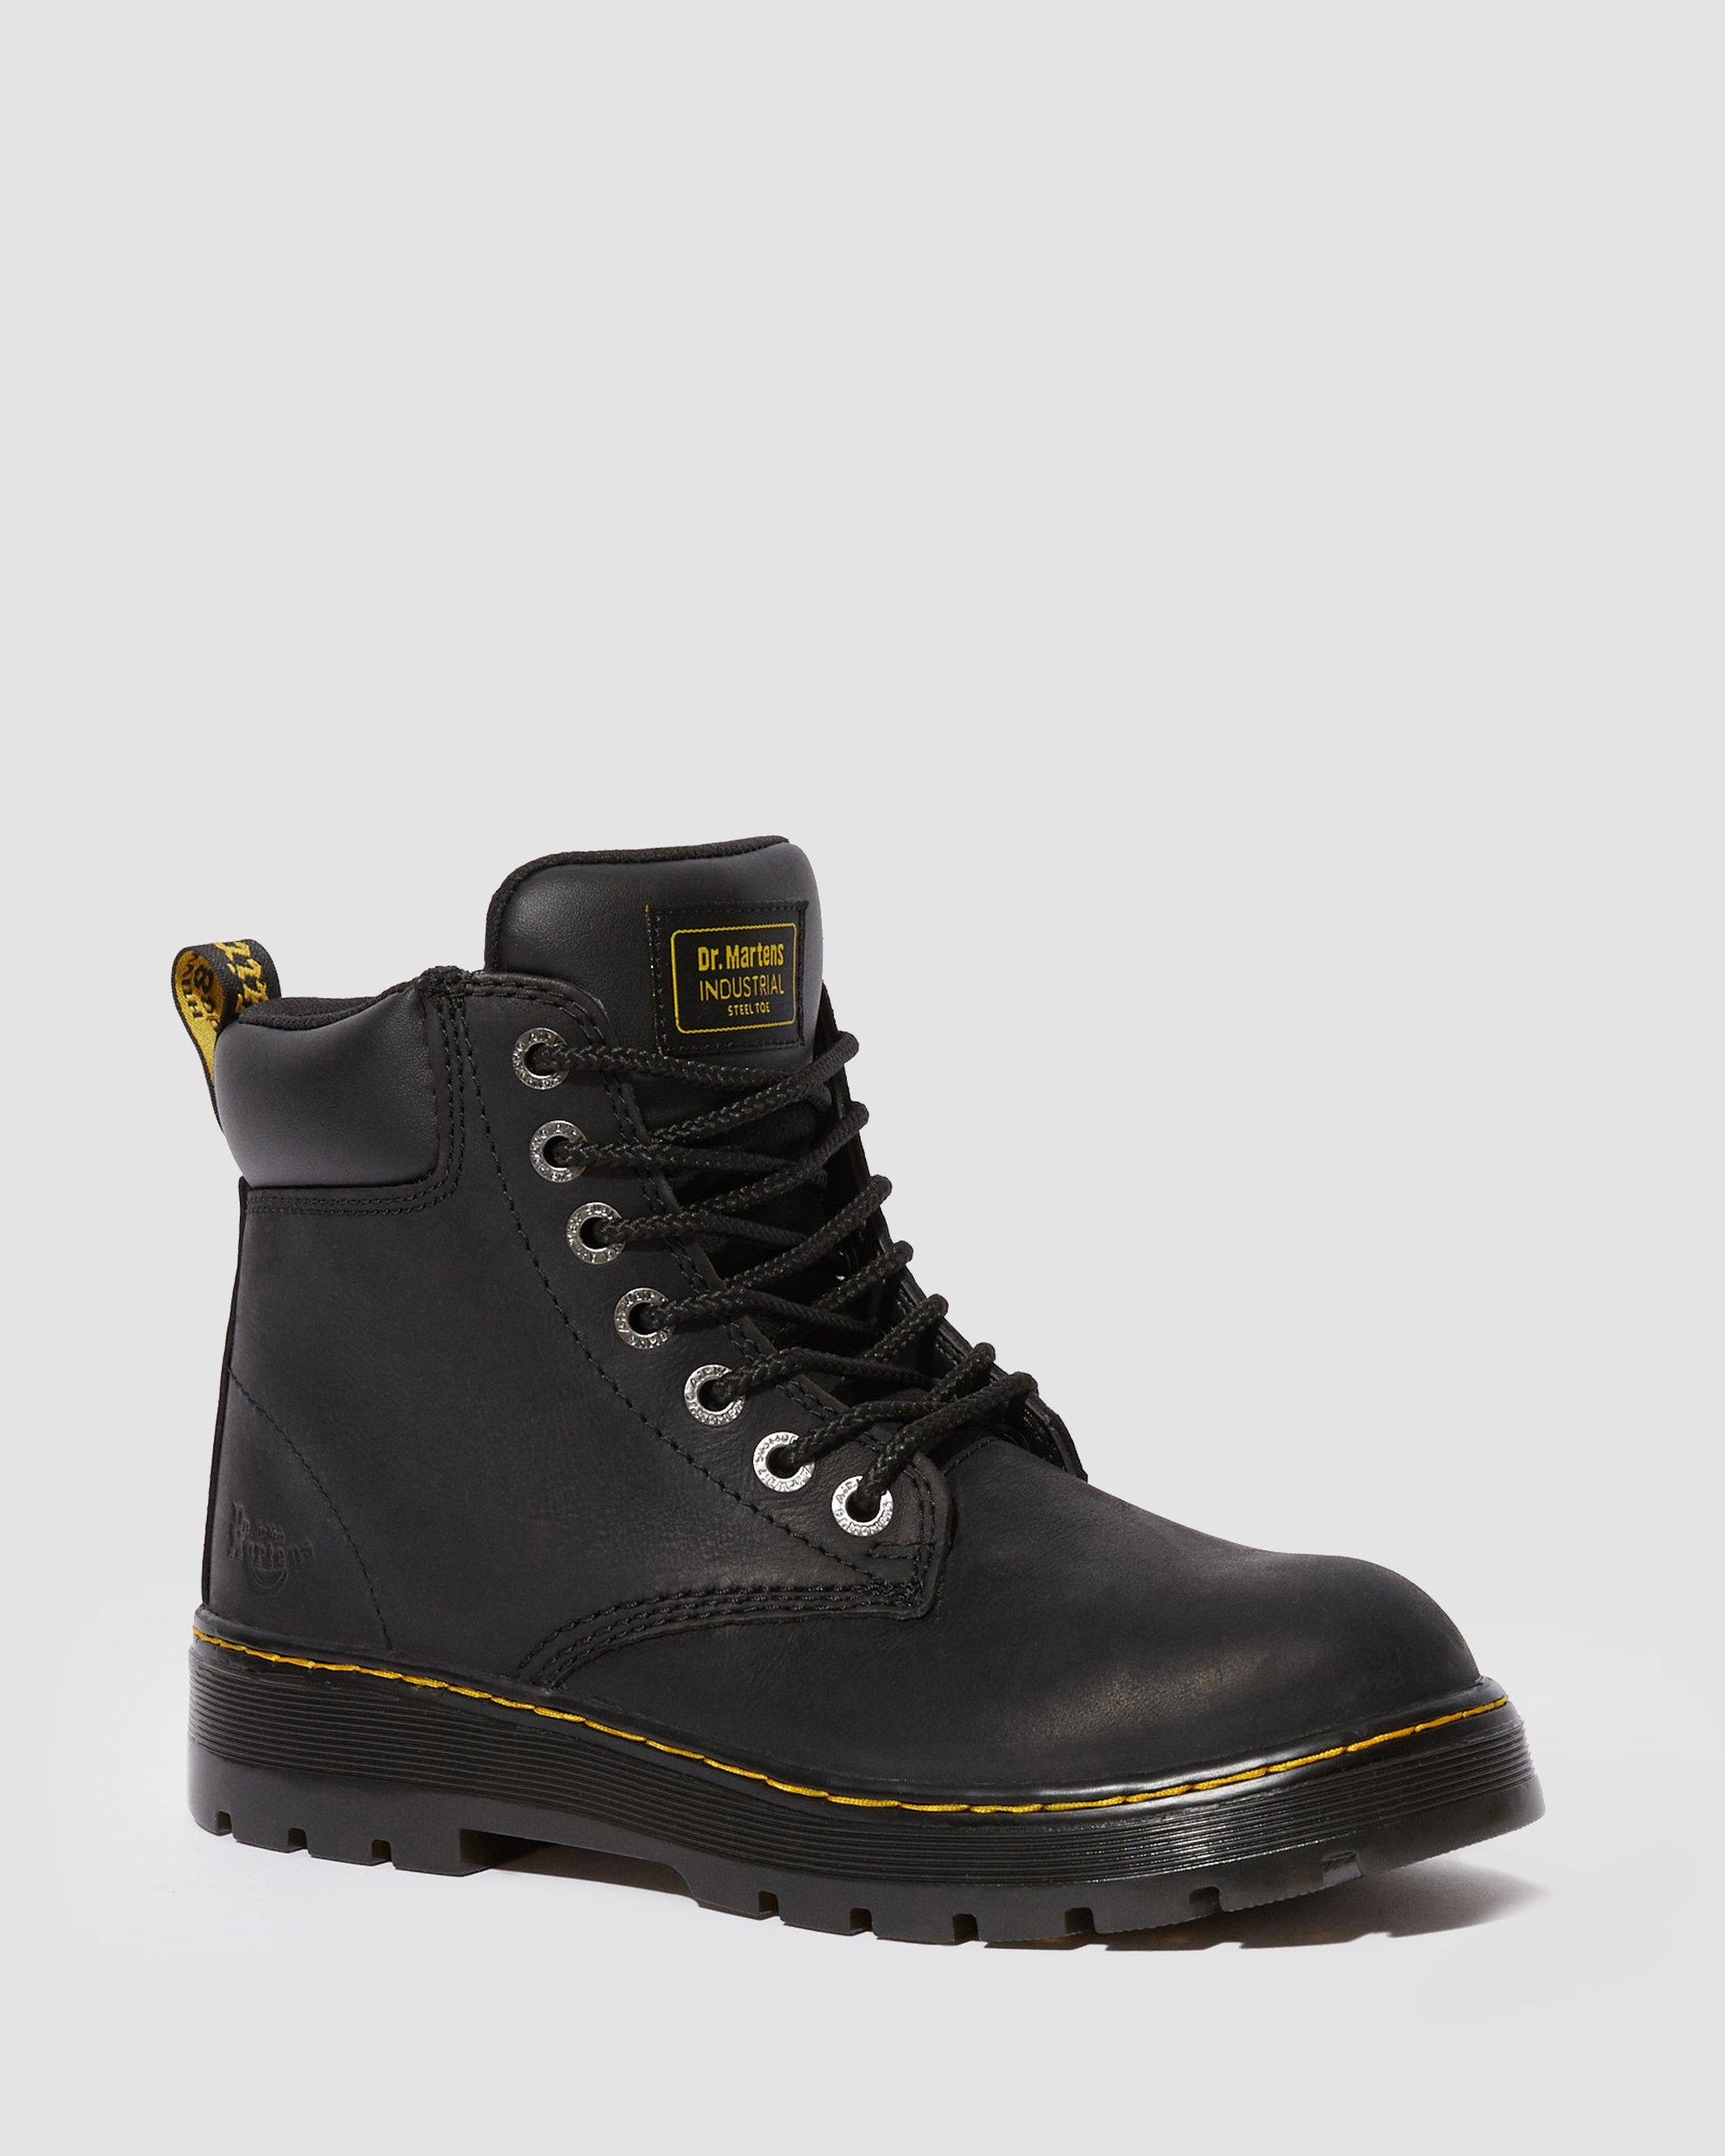 WINCH STEEL TOE WORK BOOTS | Dr